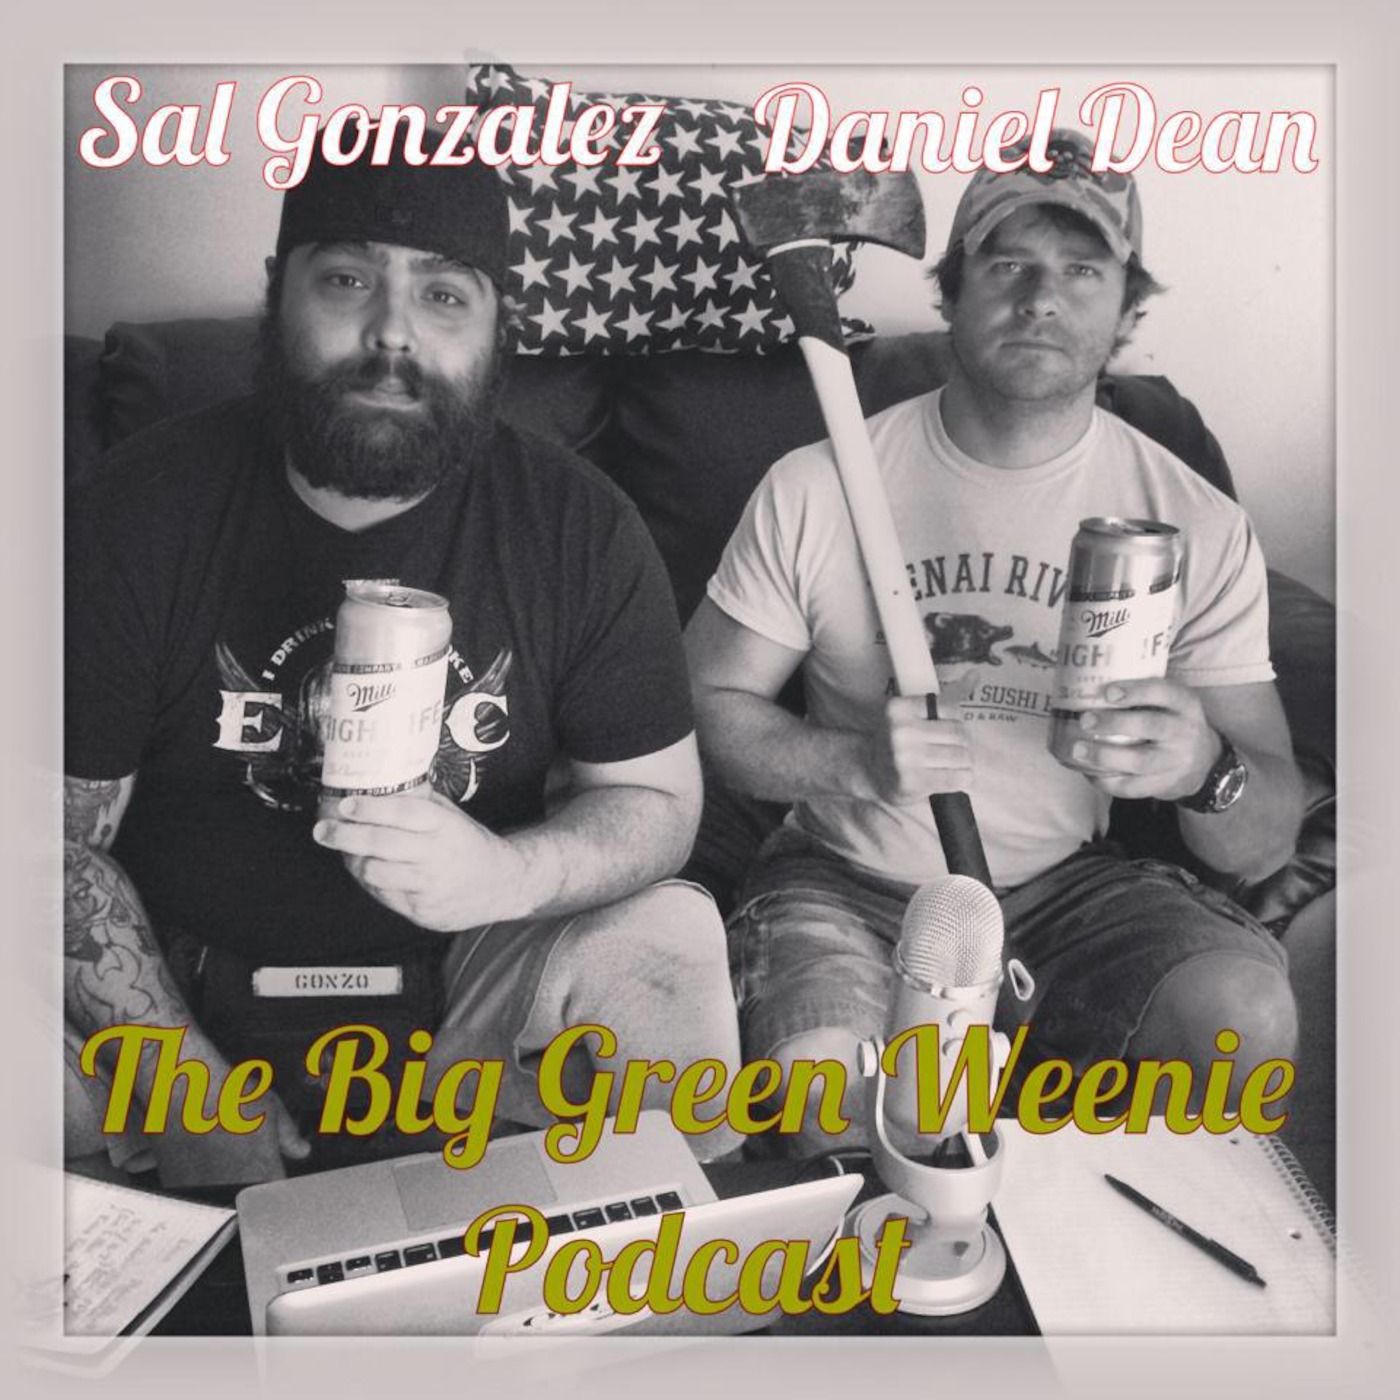 Big Green Weenie Podcast